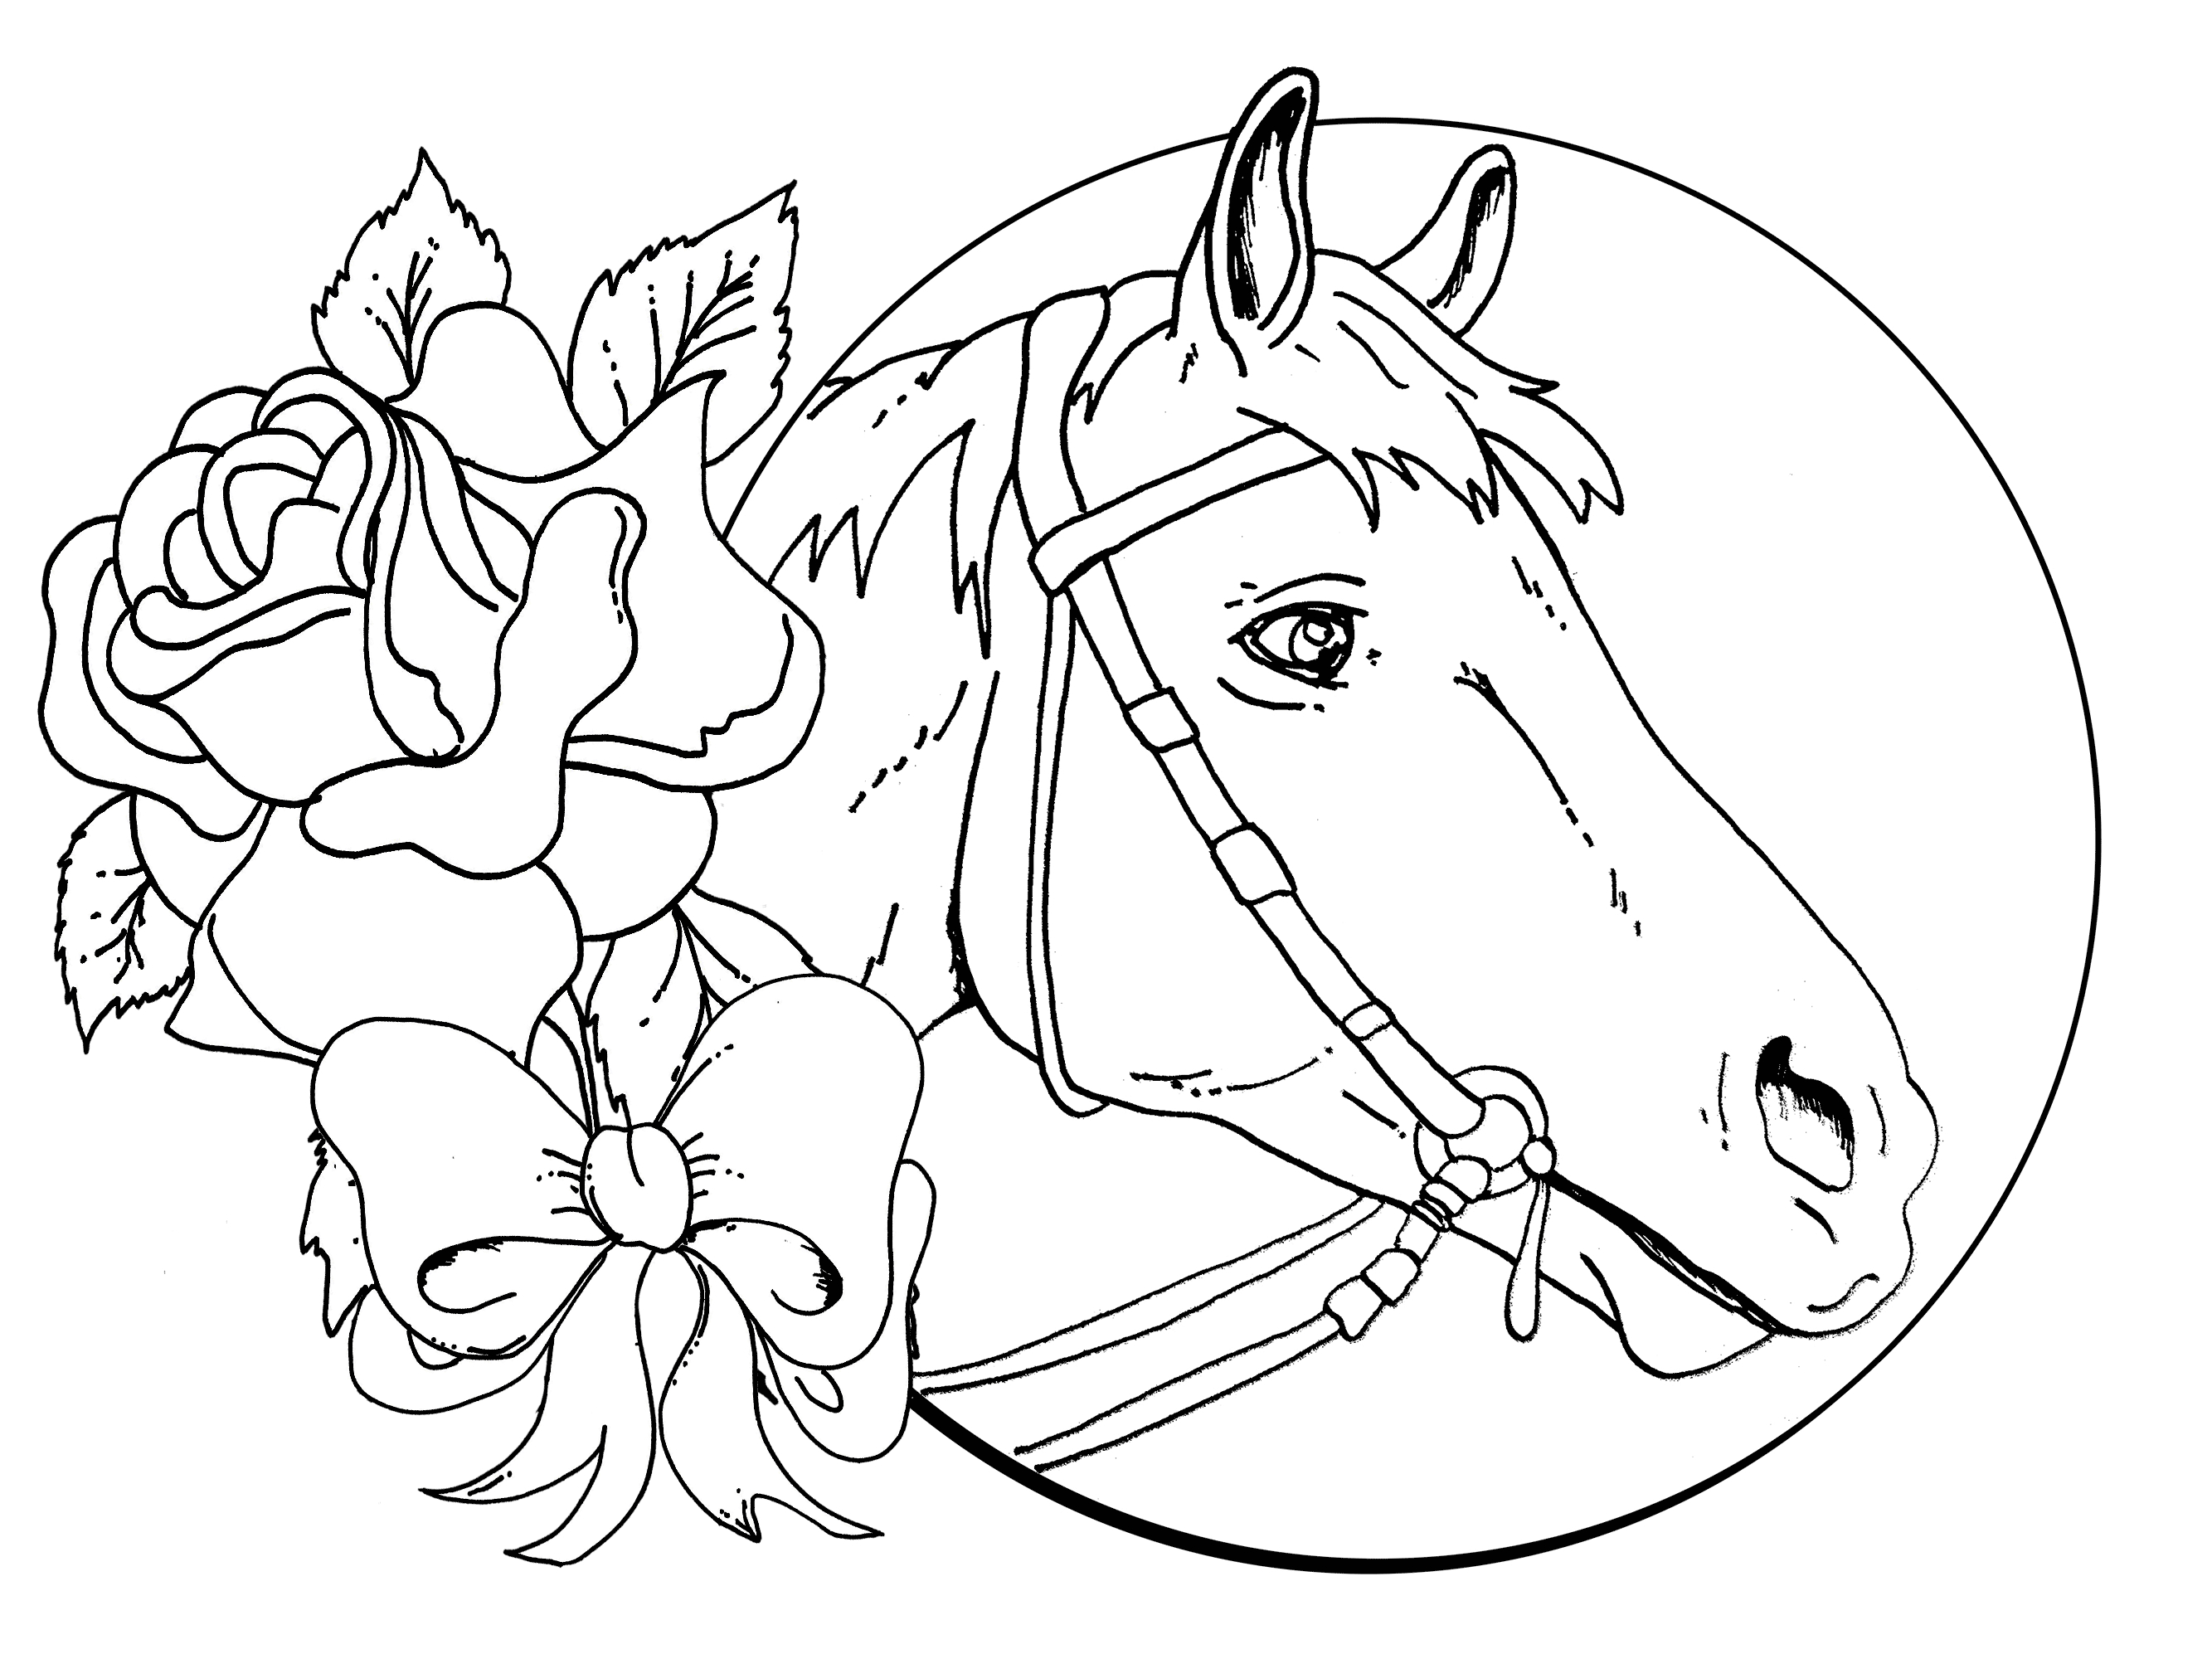 Printable Coloring Pages For Girls - Saglik - Free Printable Coloring Pages For Girls